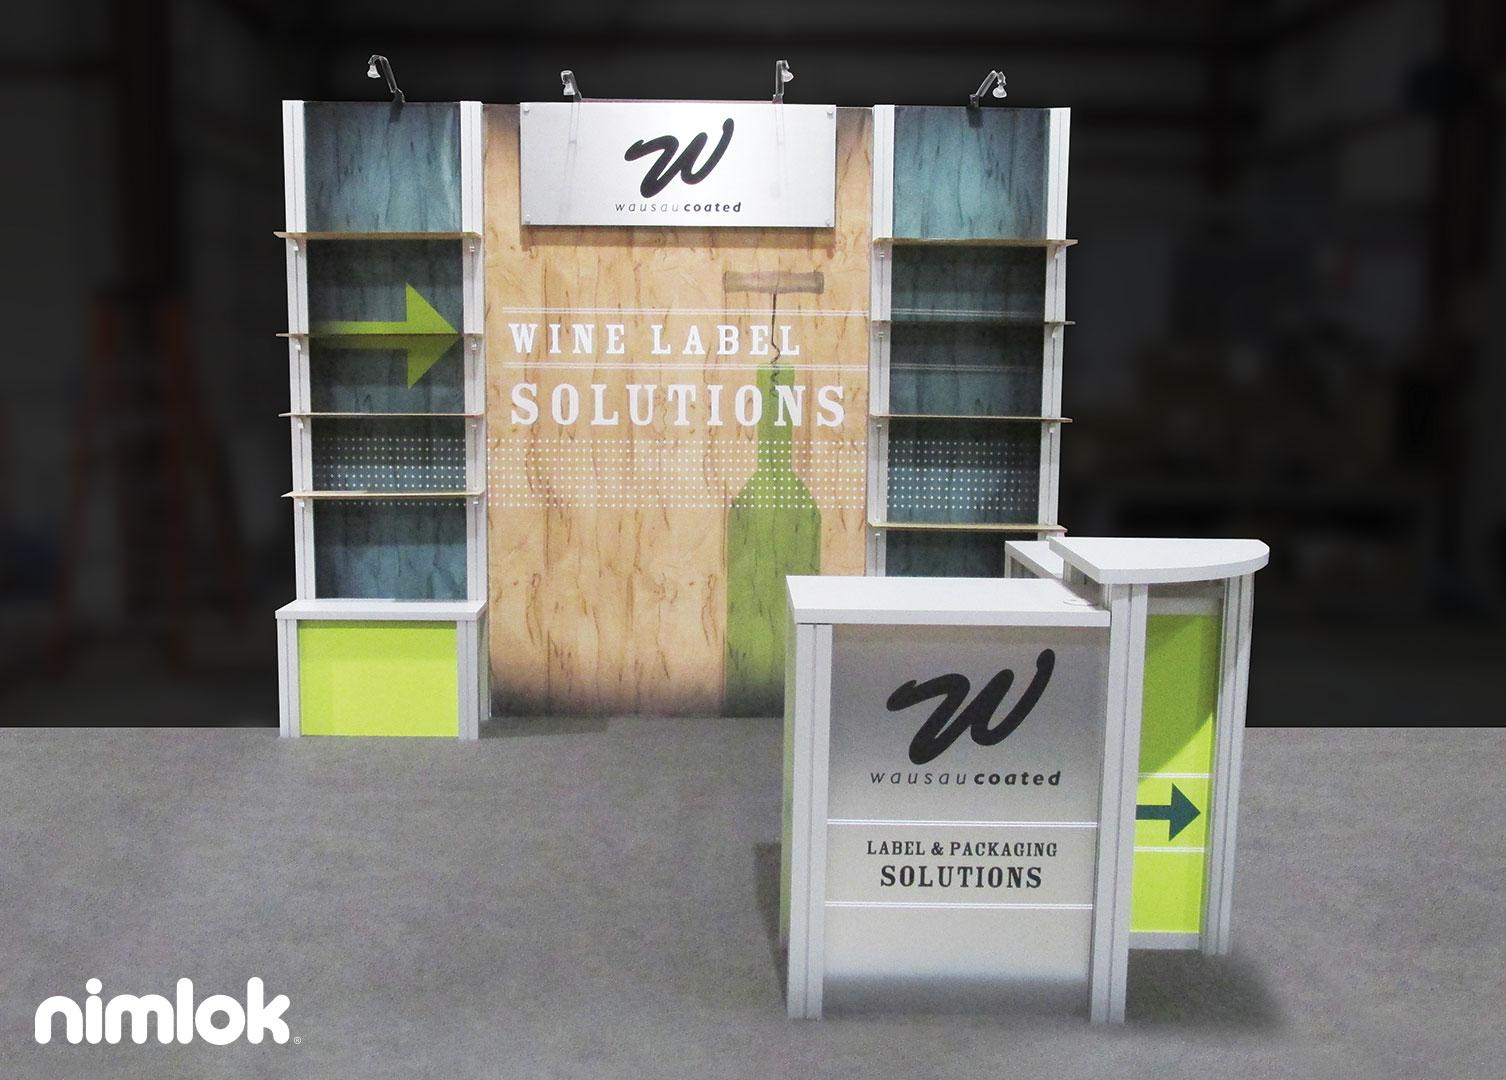 10x10 Booth Design Ideas